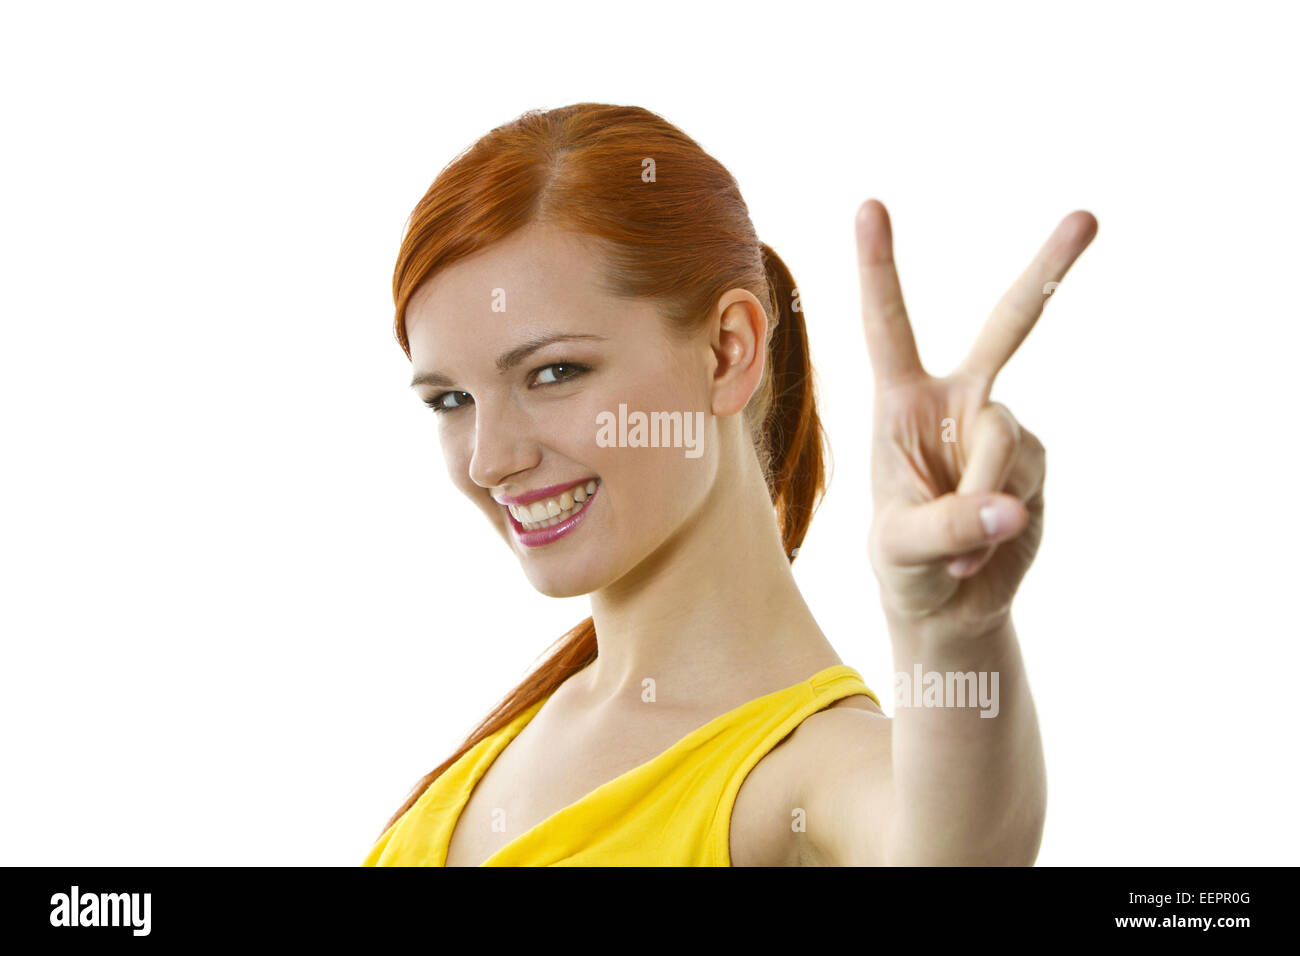 Junge rothaarige Frau zeigt Victory Zeichen, Young red-haired woman shows victory sign, attractive, beautiful, beauty, - Stock Image